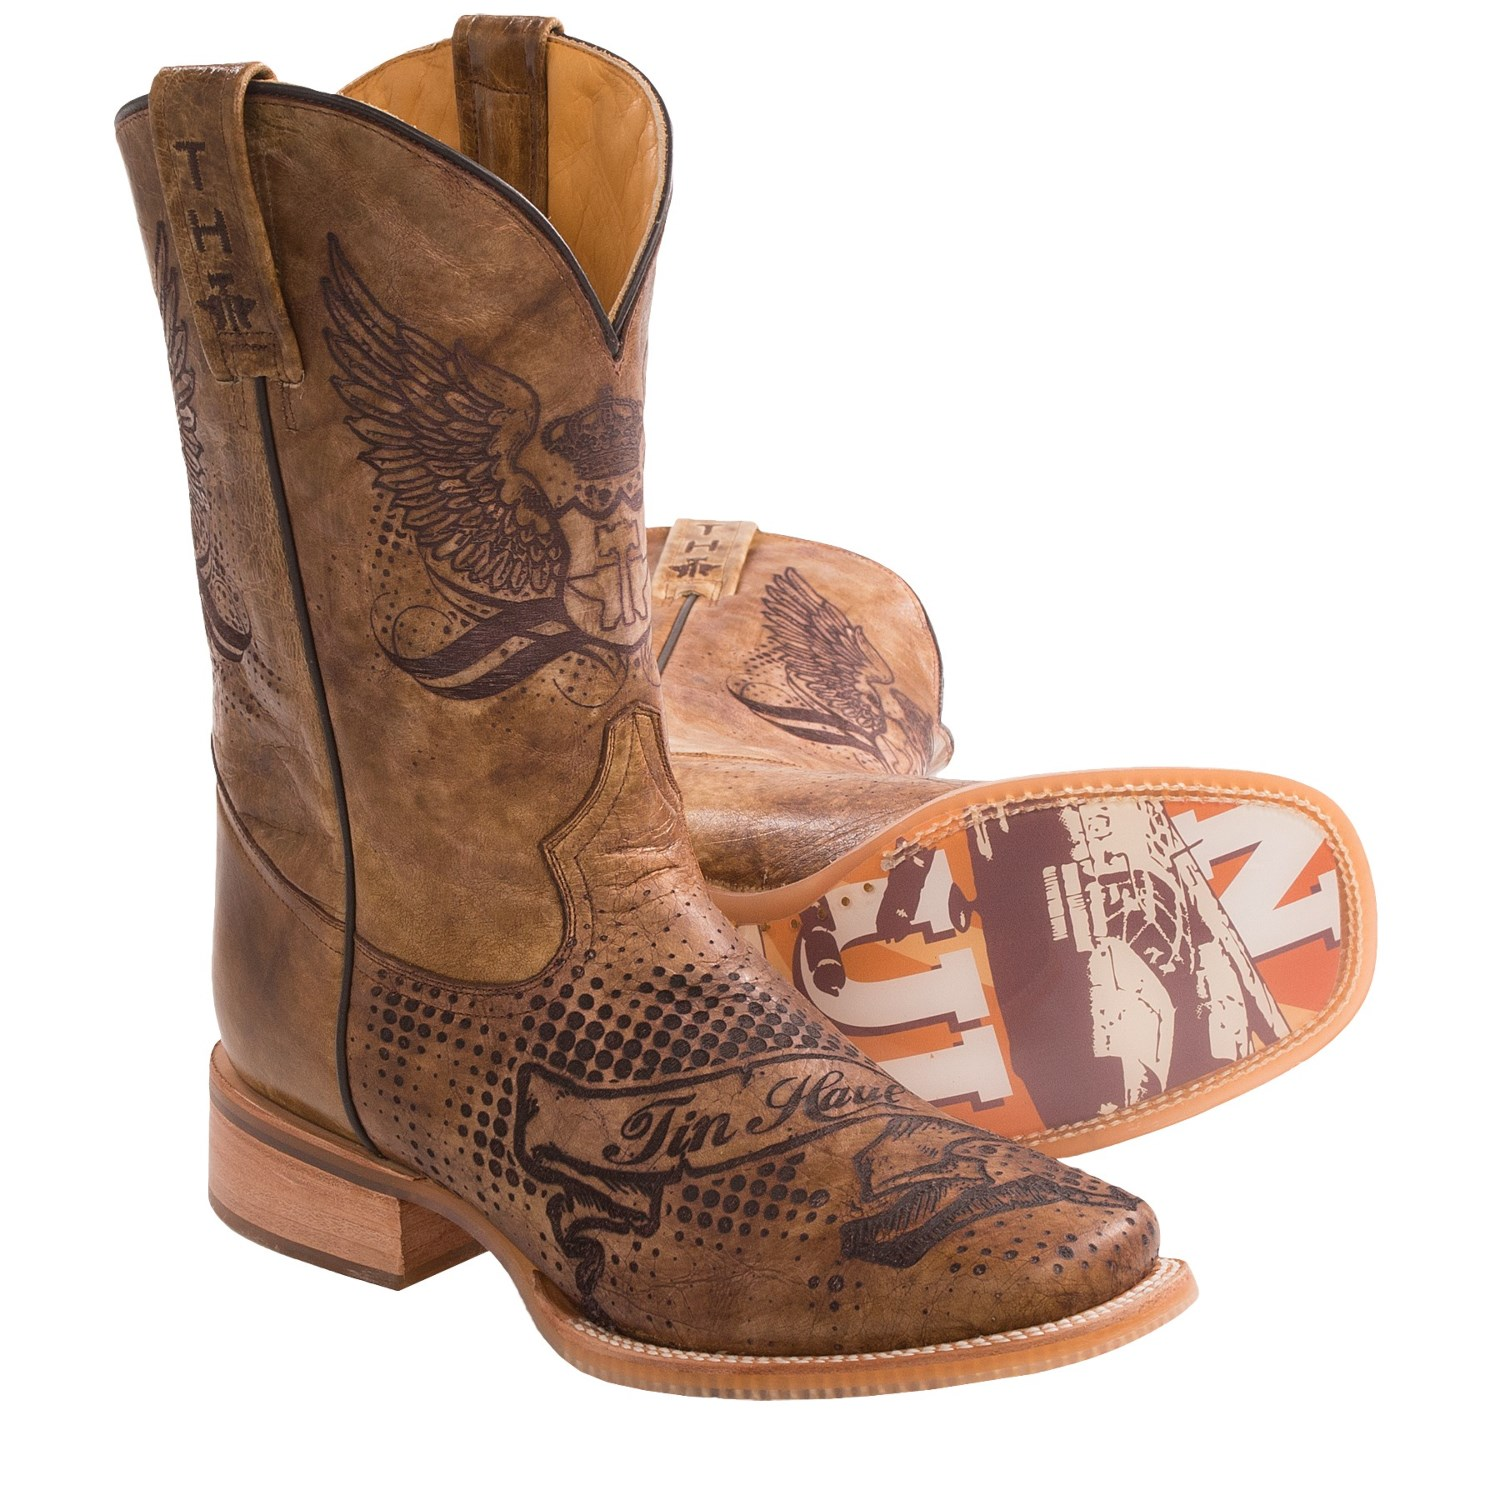 crest cowboy boots square toe for men in brownp7306m 0215002jpg 1500x1500